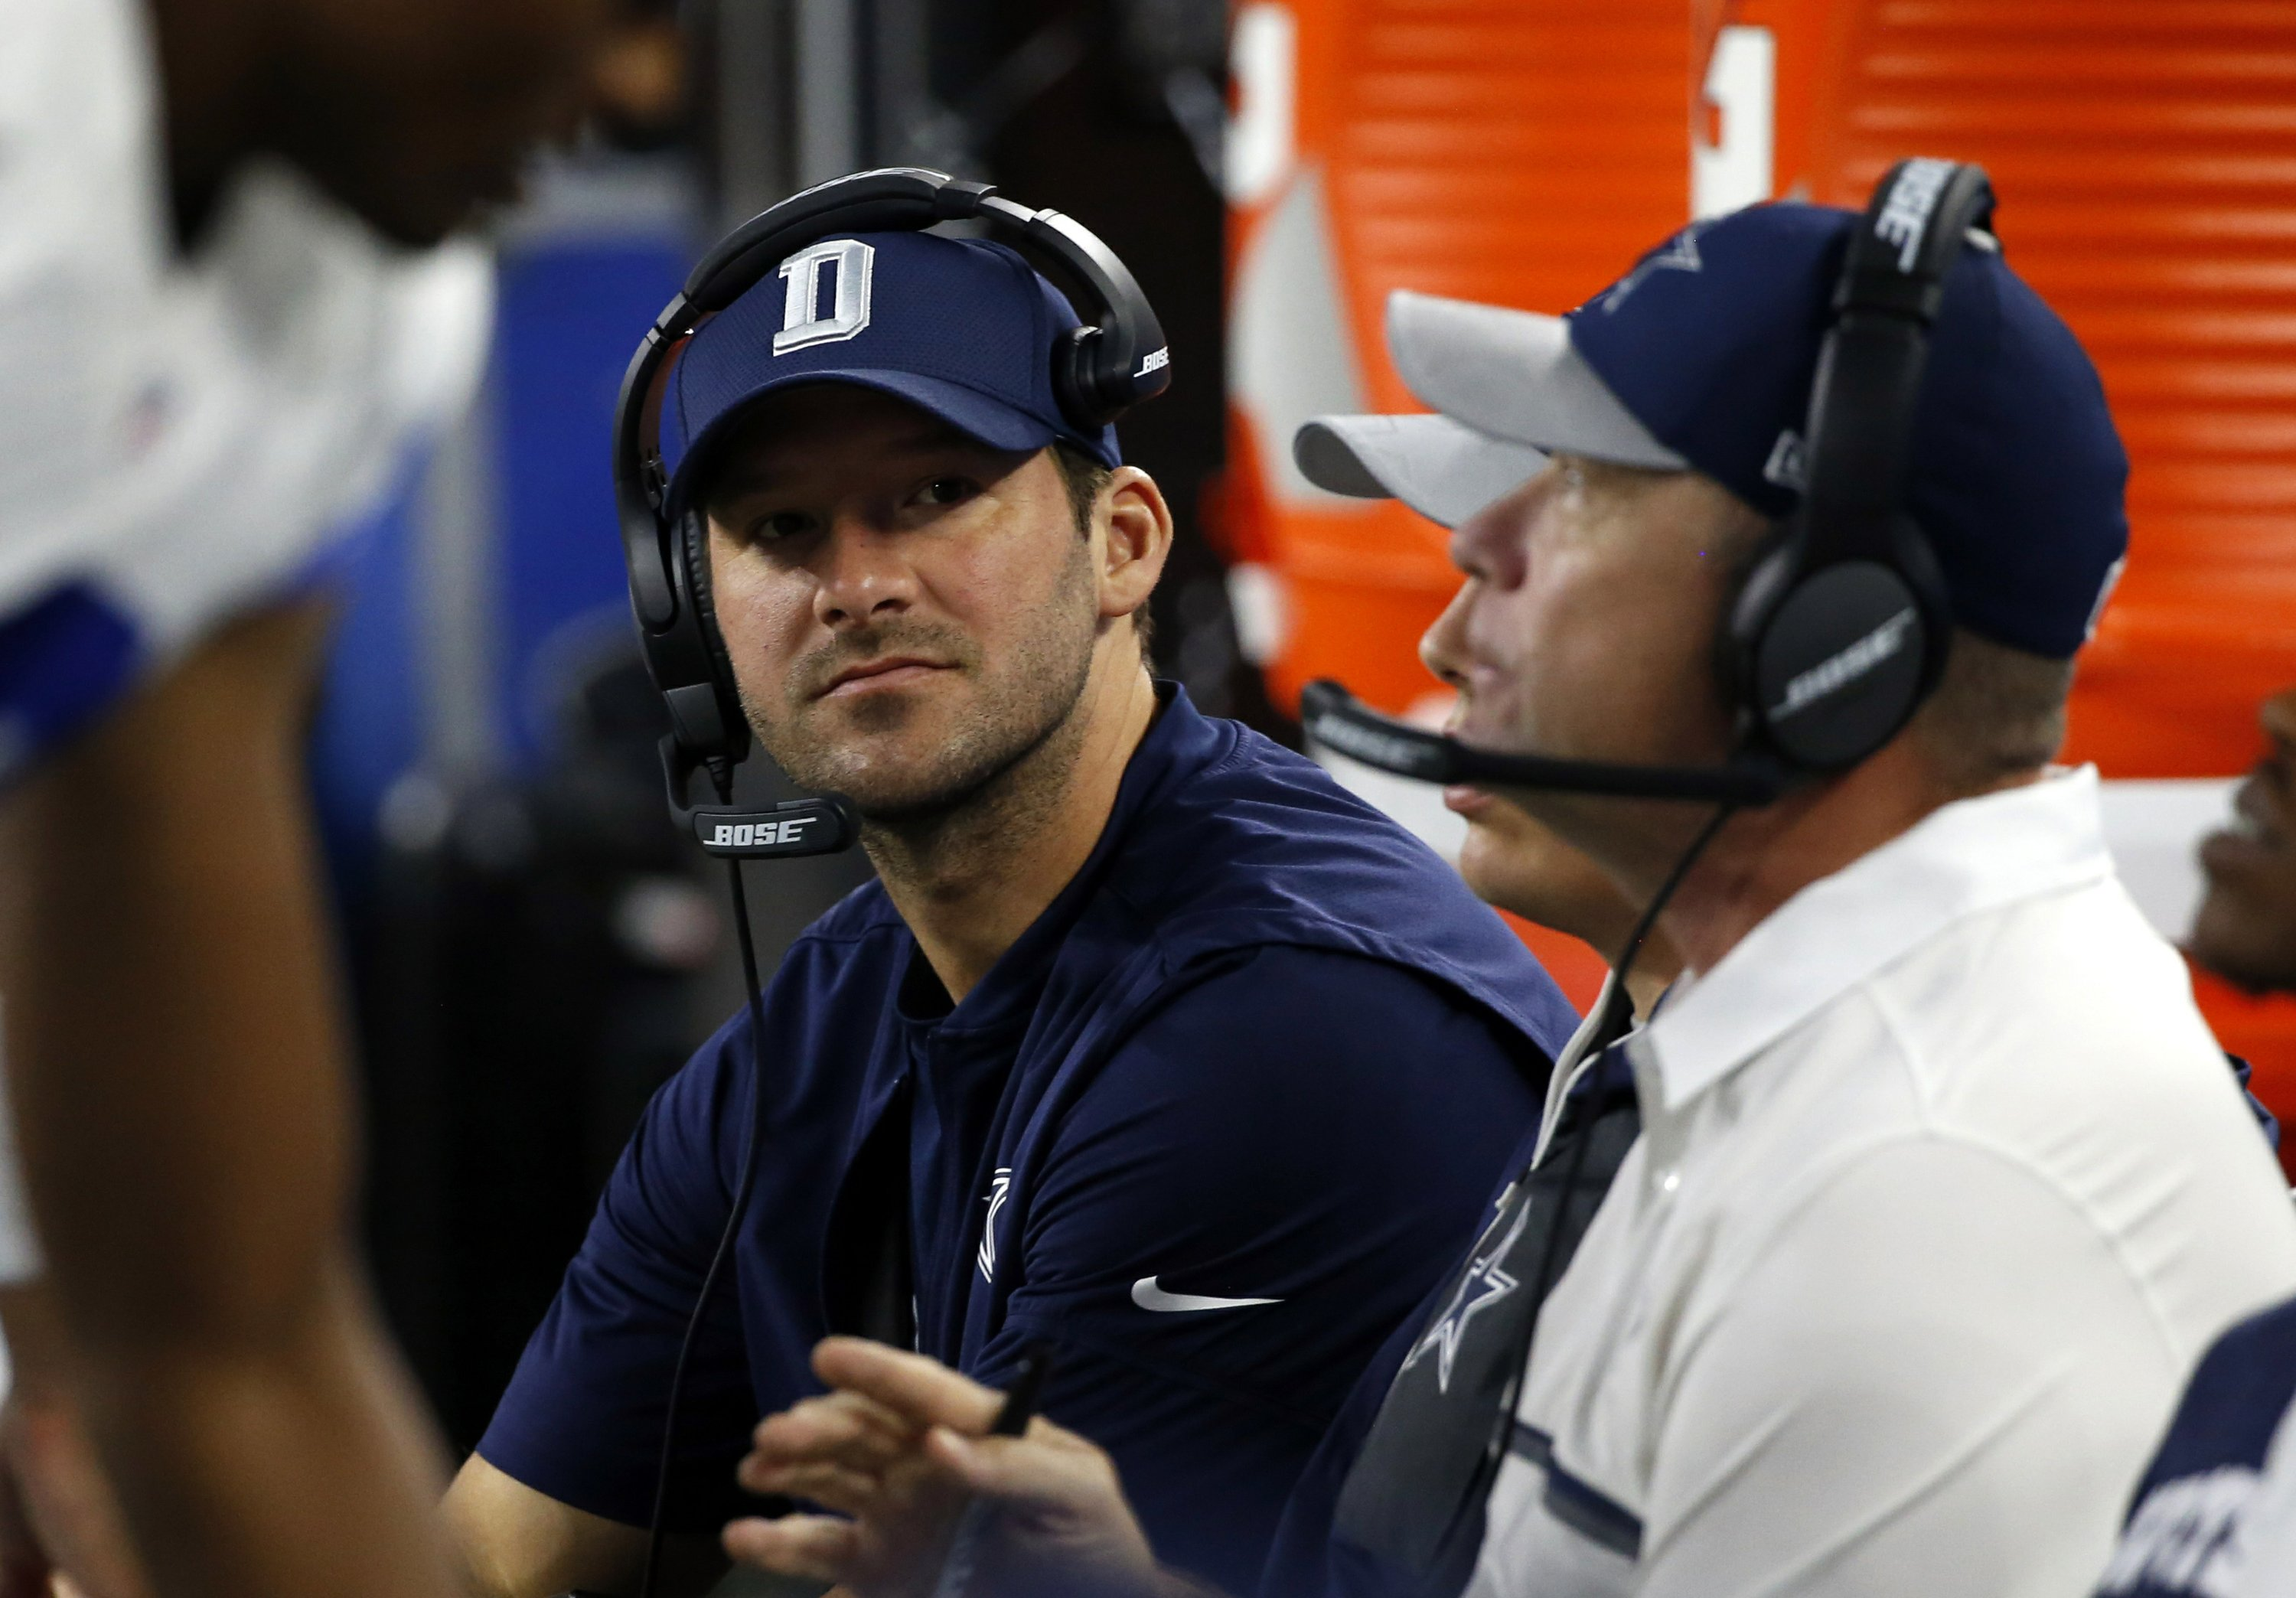 Cowboys' Romo full go at practice, and running scout team